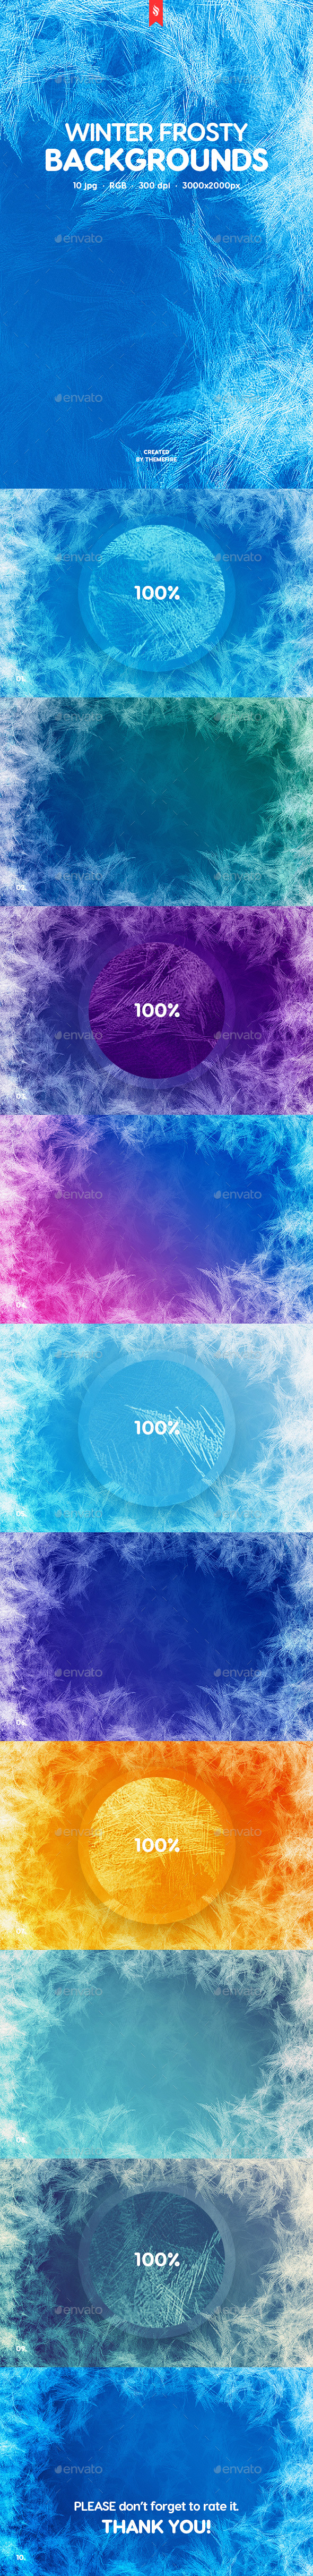 Winter Frosty Backgrounds - Backgrounds Graphics